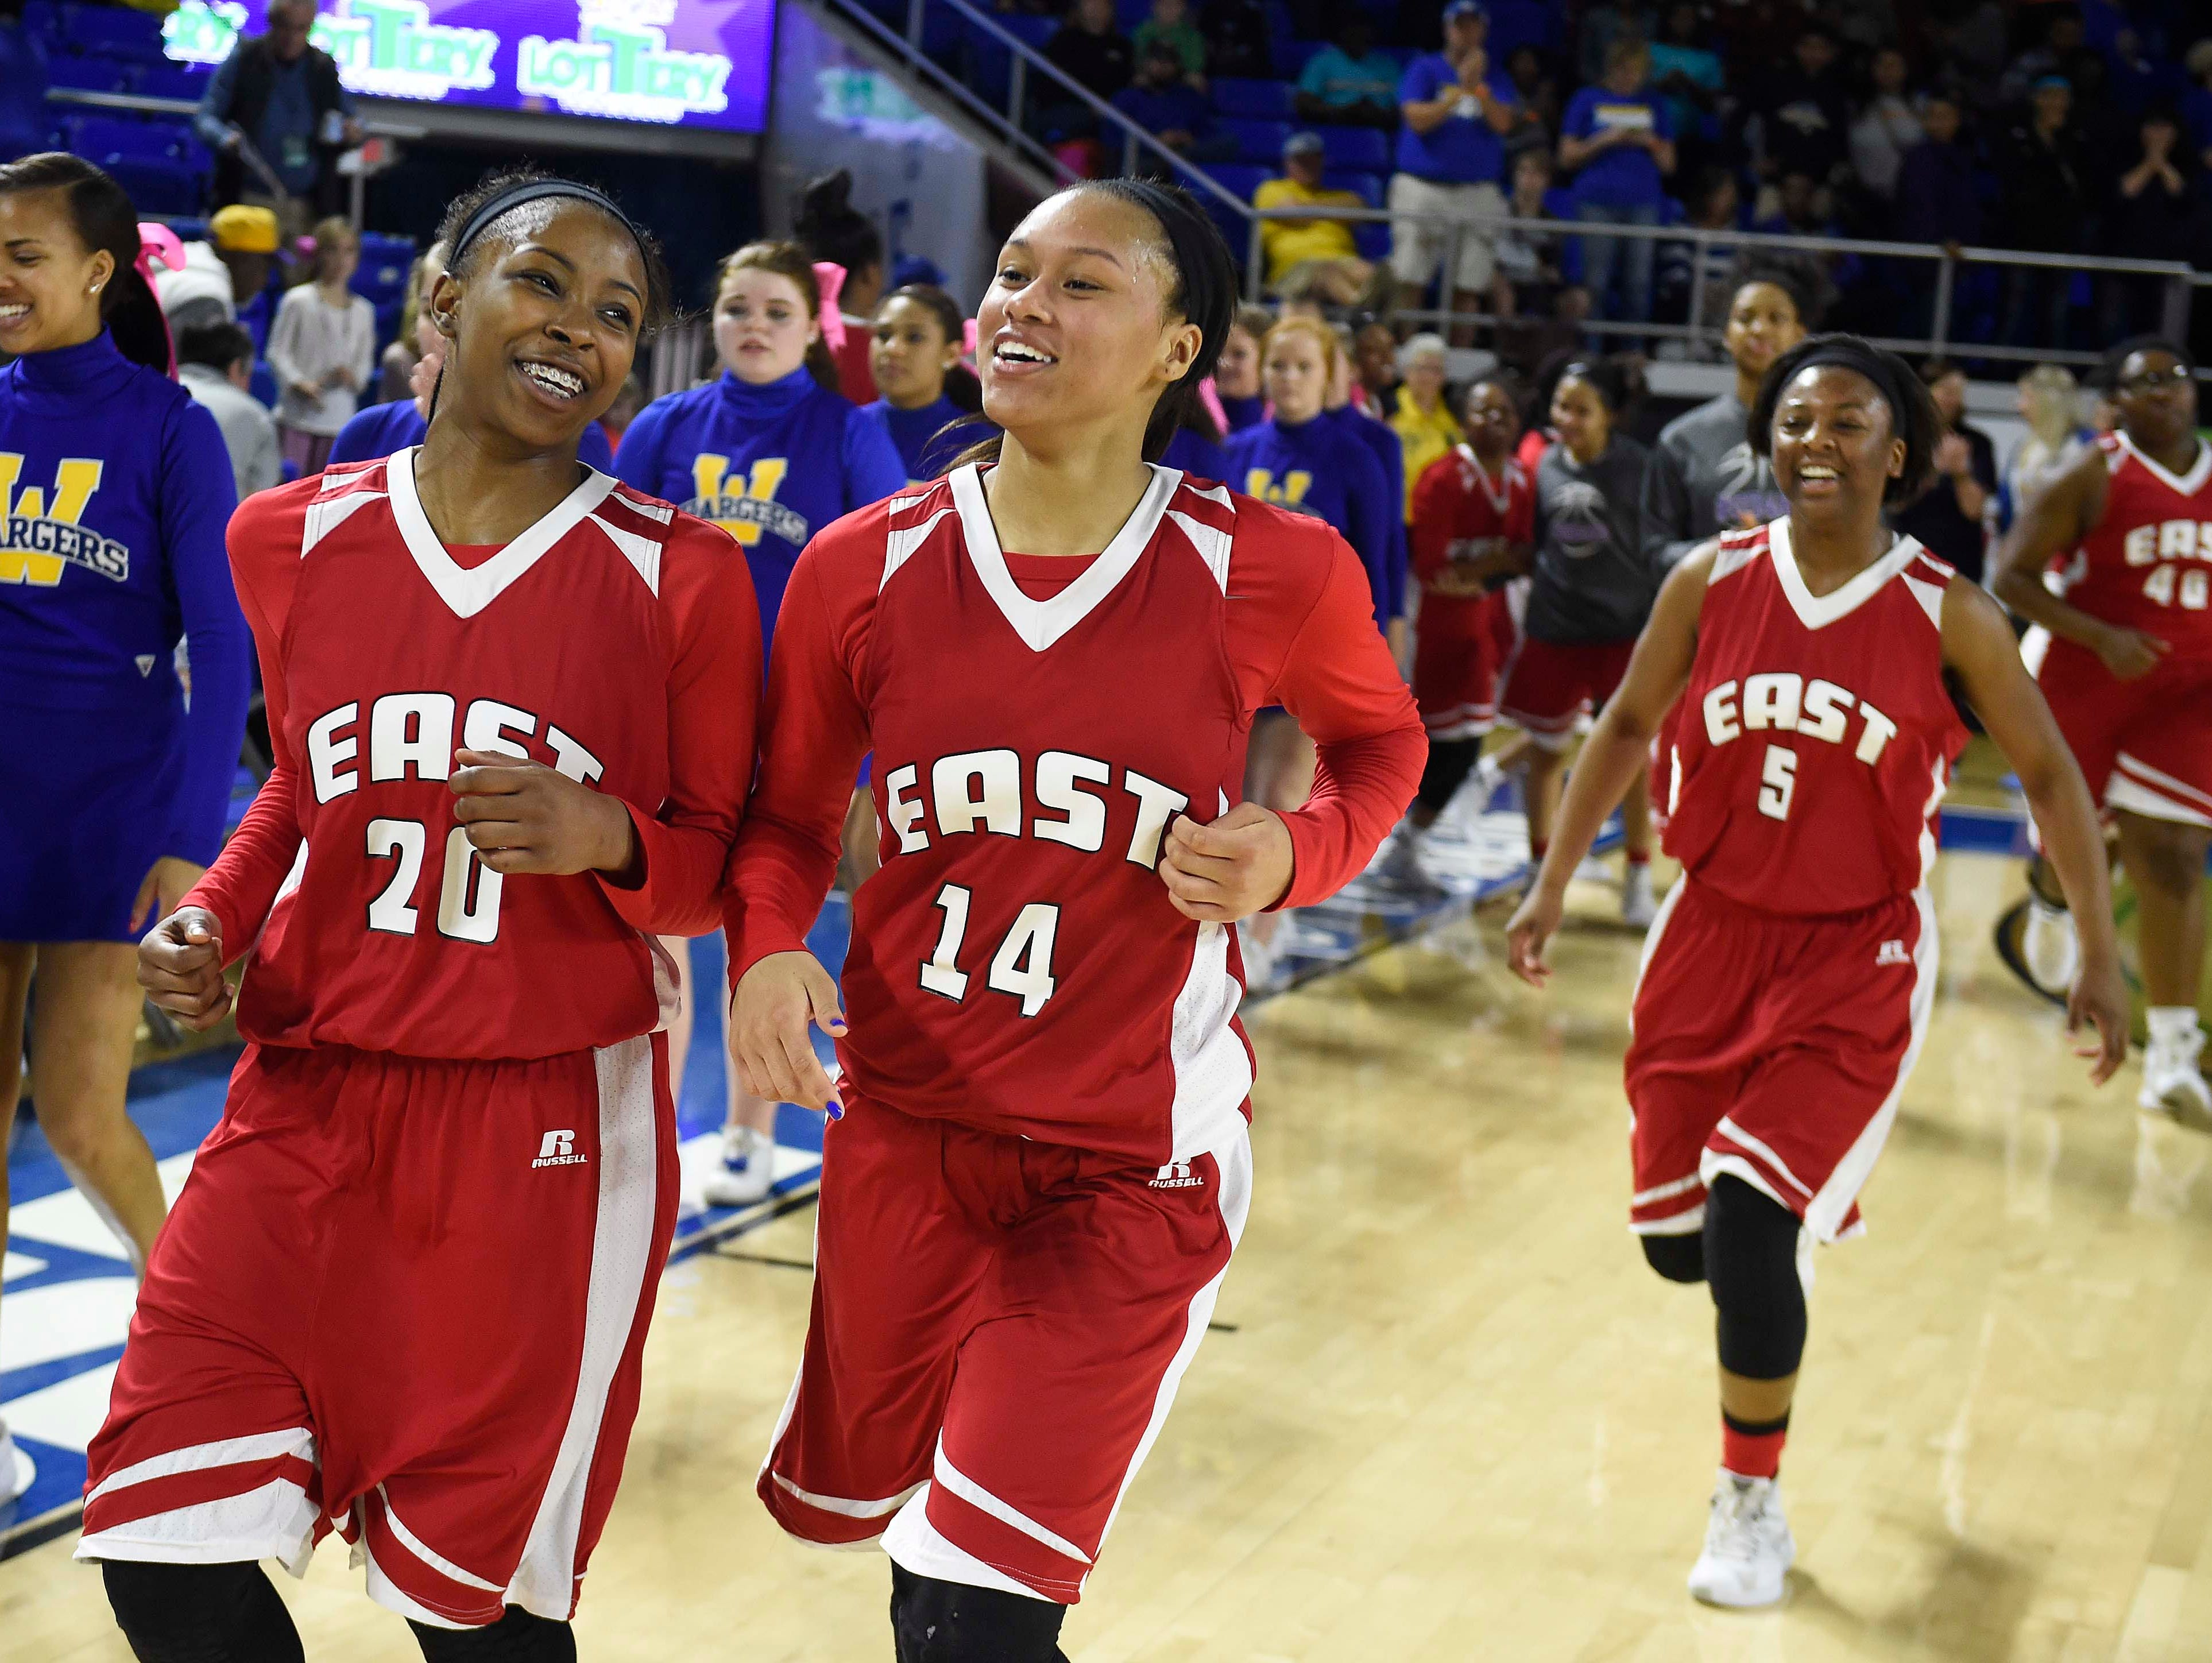 East's Erica Haynes-Overton (20) and Kaia Upton (14) celebrate as they win over Westview High School 35-32 in the Division I Class AA Girl's basketball semi-finals at the Murphy Center on MTSU's campus March 11, 2016 in Murfreesboro, Tenn.